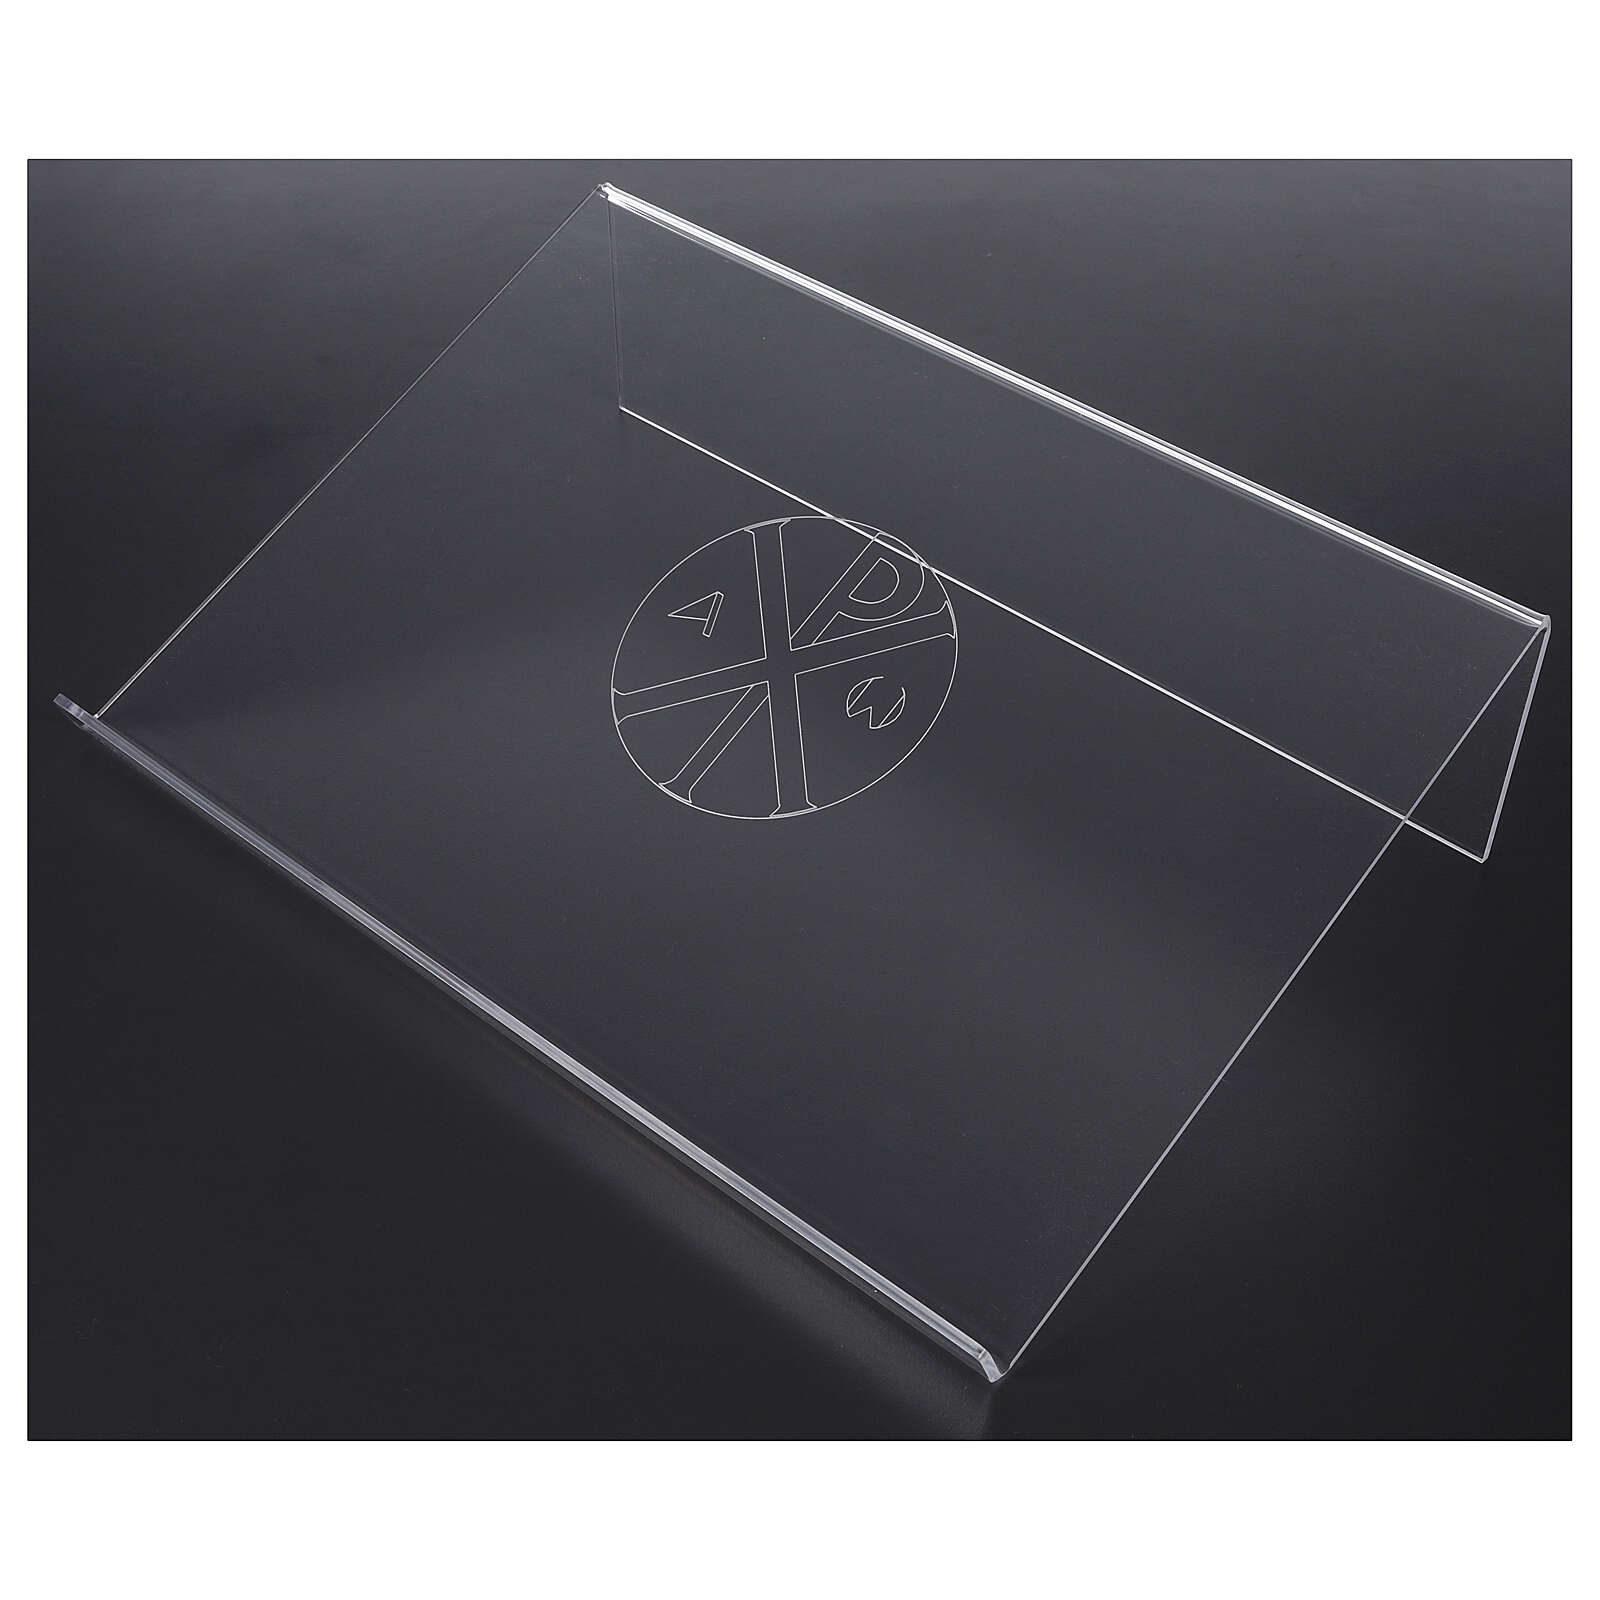 Plexiglas book stand with Chi-Rho 18x12 in 4